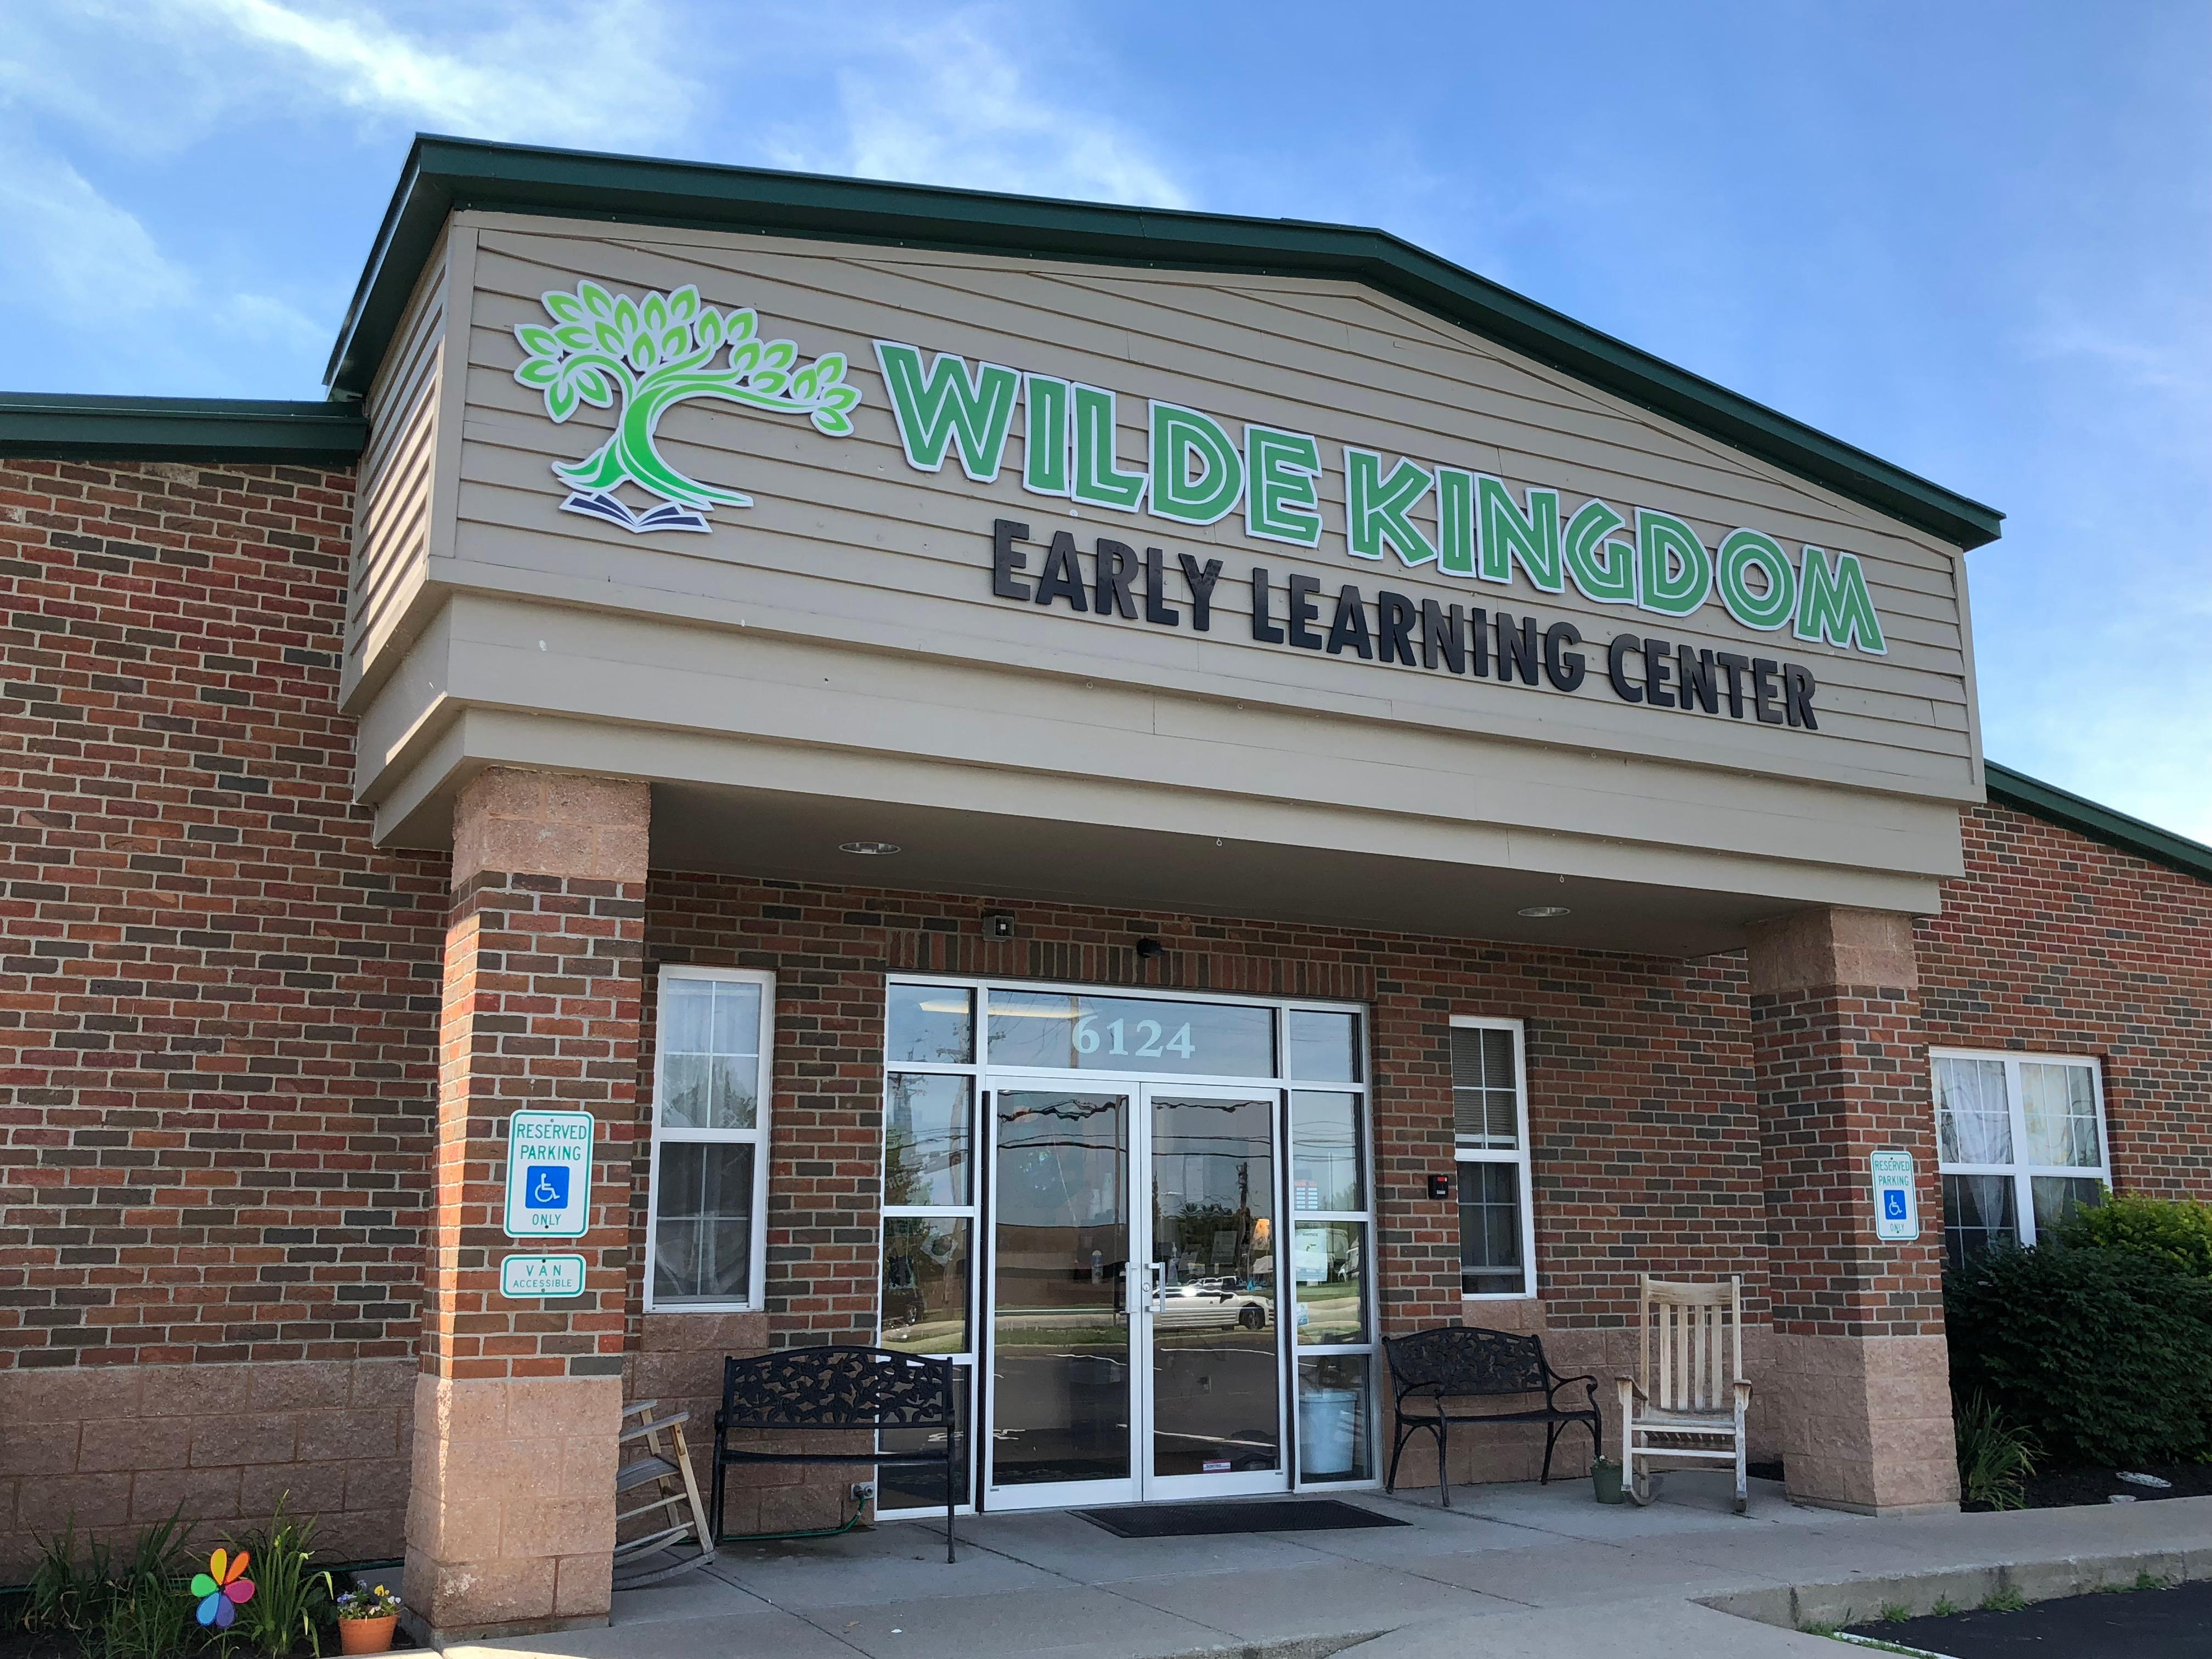 Wilde Kingdom Early Learning Center image 5